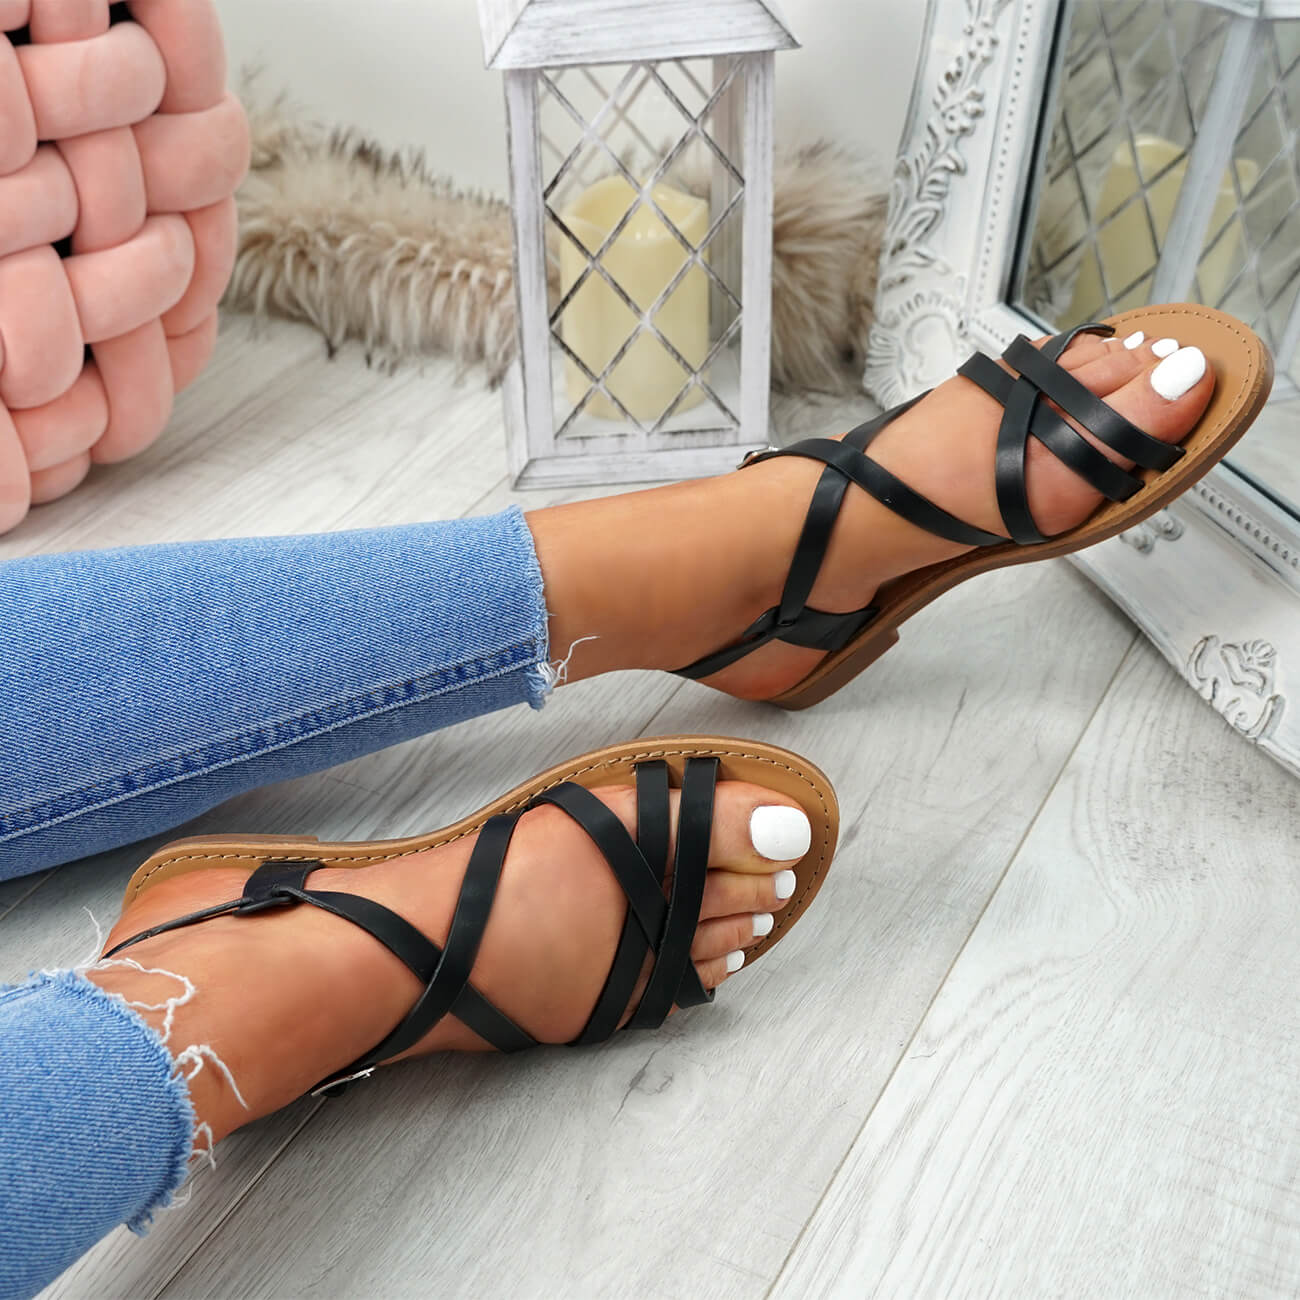 WOMENS-LADIES-ANKLE-STRAP-PEEP-TOE-BUCKLE-FLAT-SANDALS-SUMMER-CASUAL-SHOES thumbnail 9